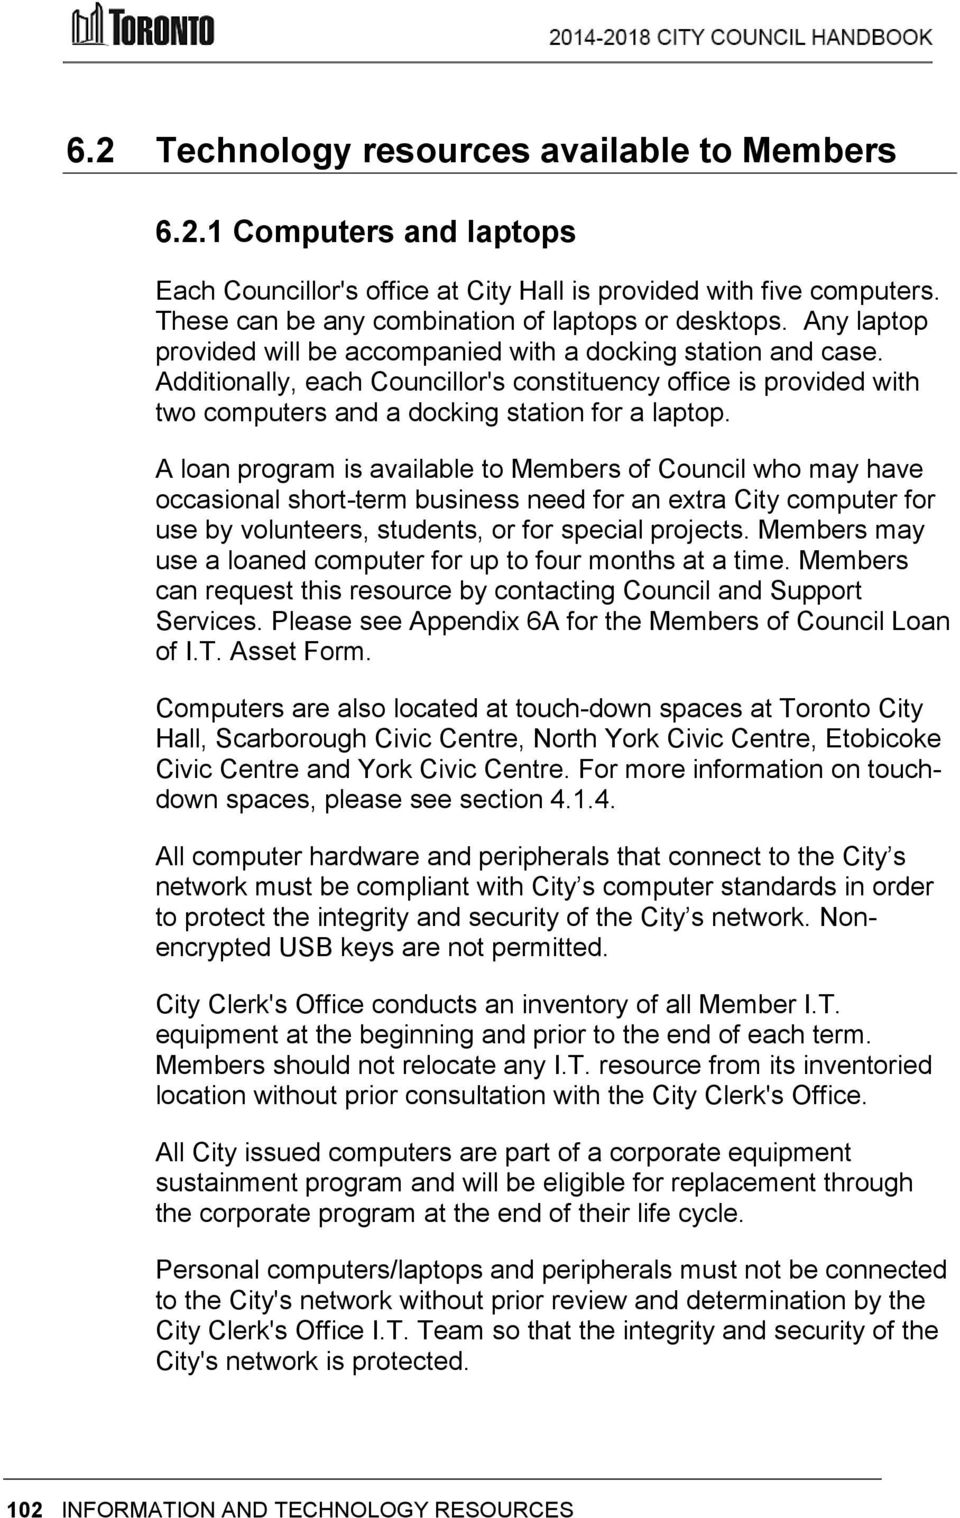 A loan program is available to Members of Council who may have occasional short-term business need for an extra City computer for use by volunteers, students, or for special projects.